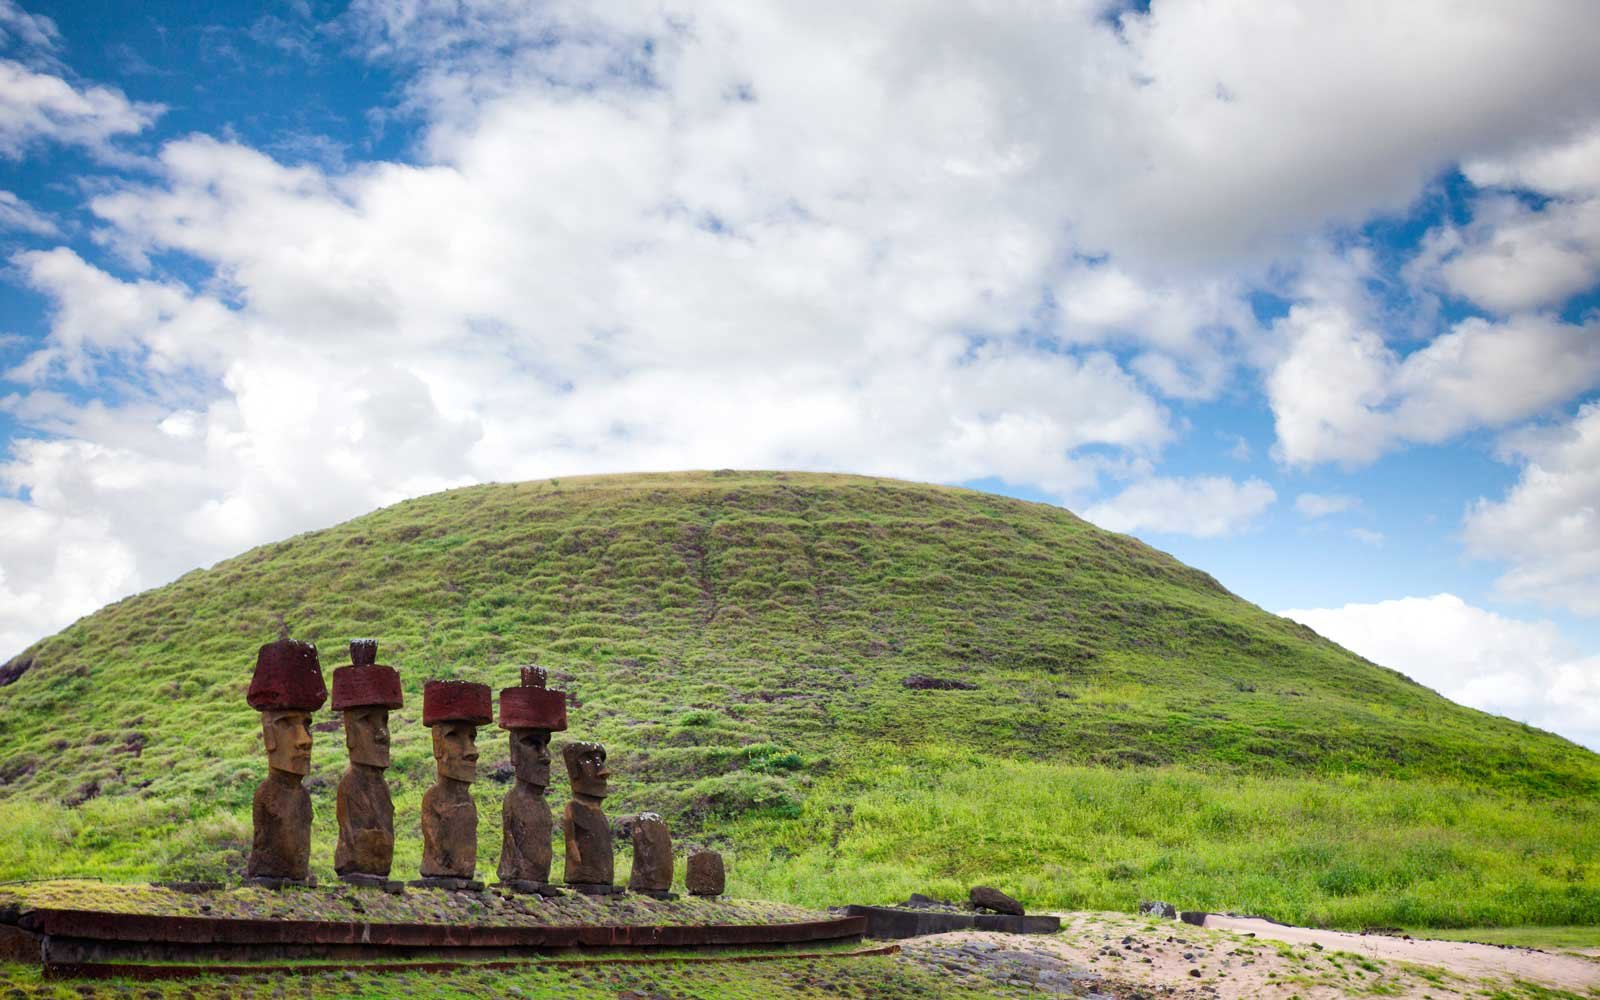 Paris Accords Will Protect Easter Island